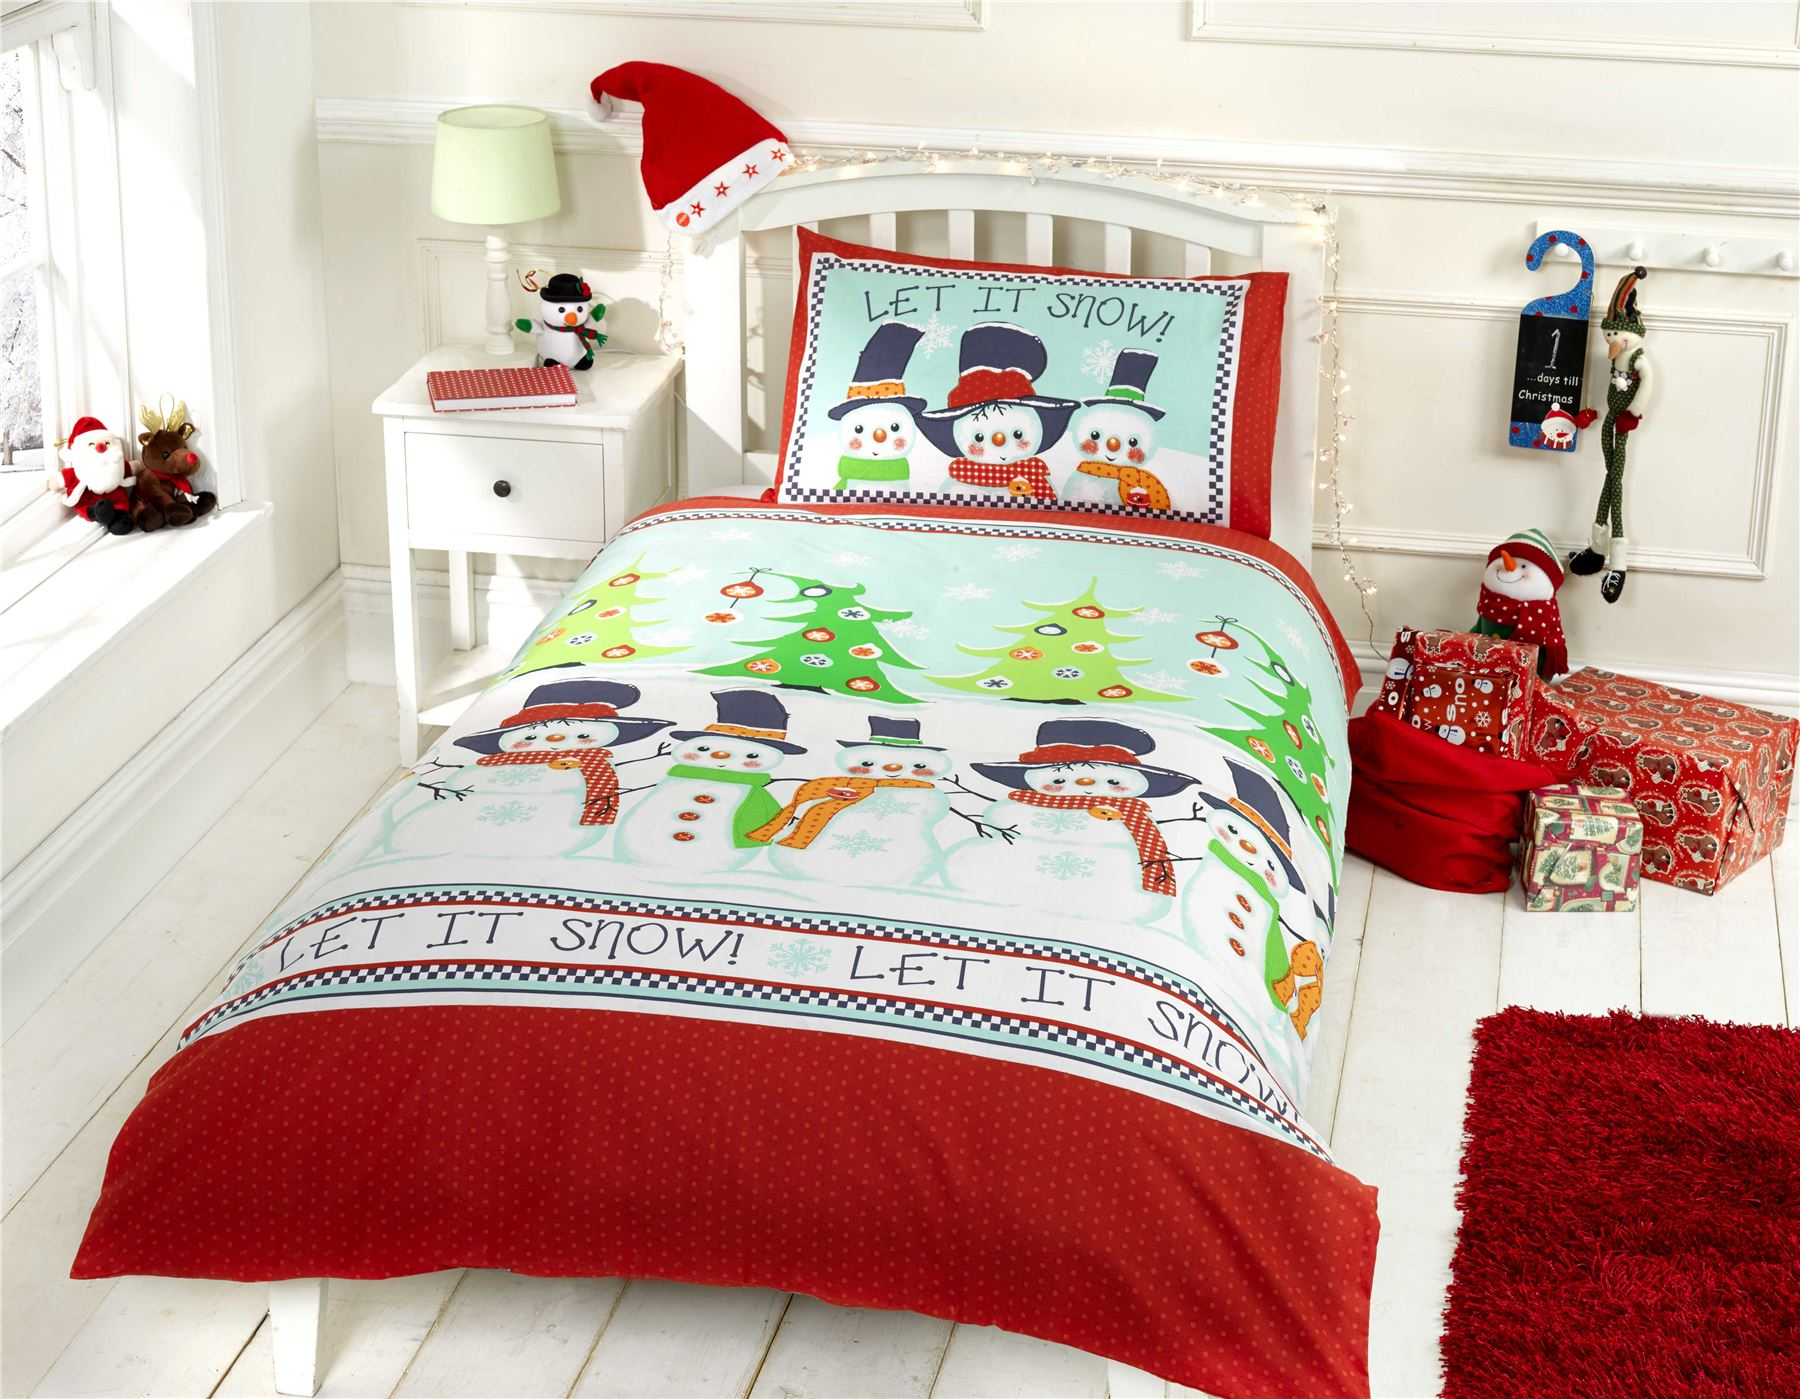 Kids christmas bedding duvet cover bright colourful - Housse de couette noel ...